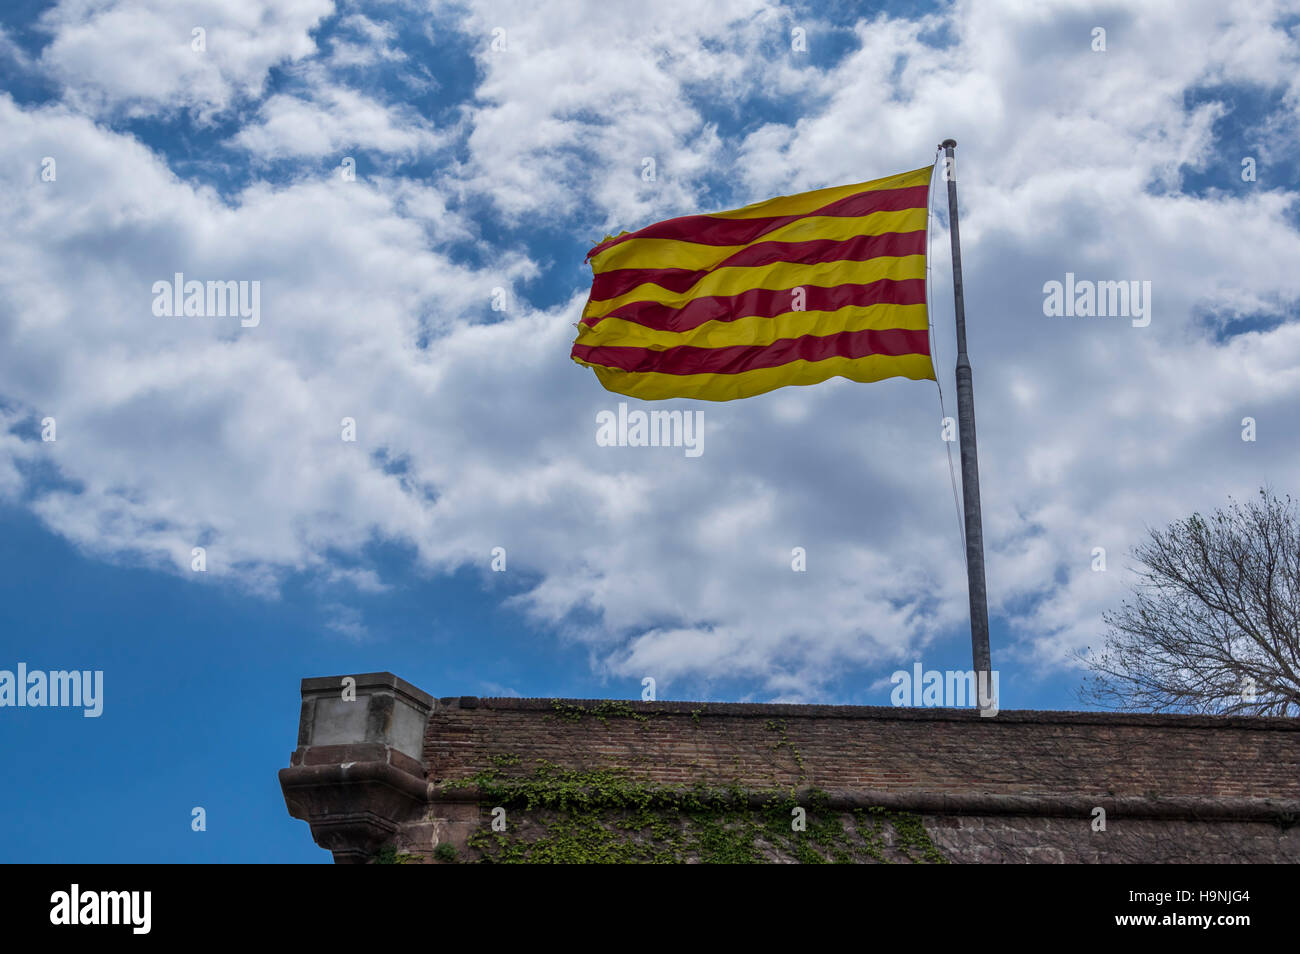 Worn out Catalan flag against blue sky and clouds. - Stock Image